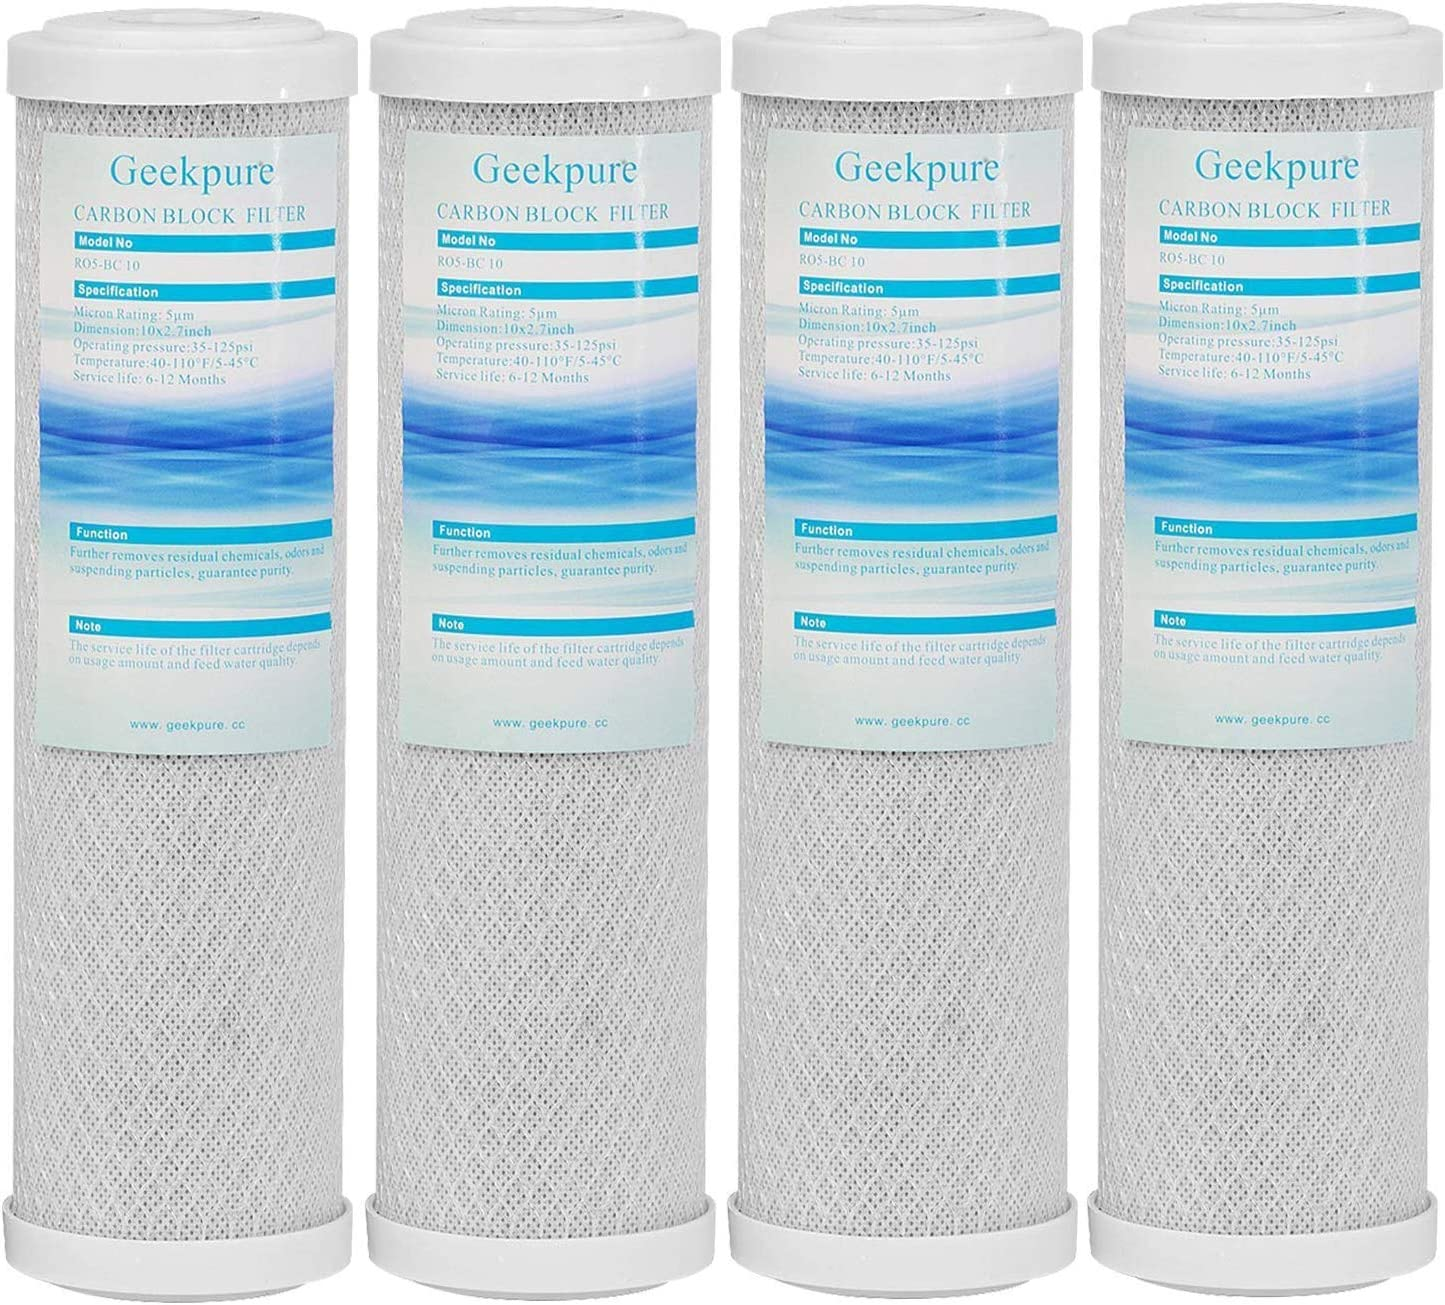 4.5 Inch x 20 Inch Geekpure 20-Inch Universal Compatible Big Blue Carbon Block Water Filter Cartridge